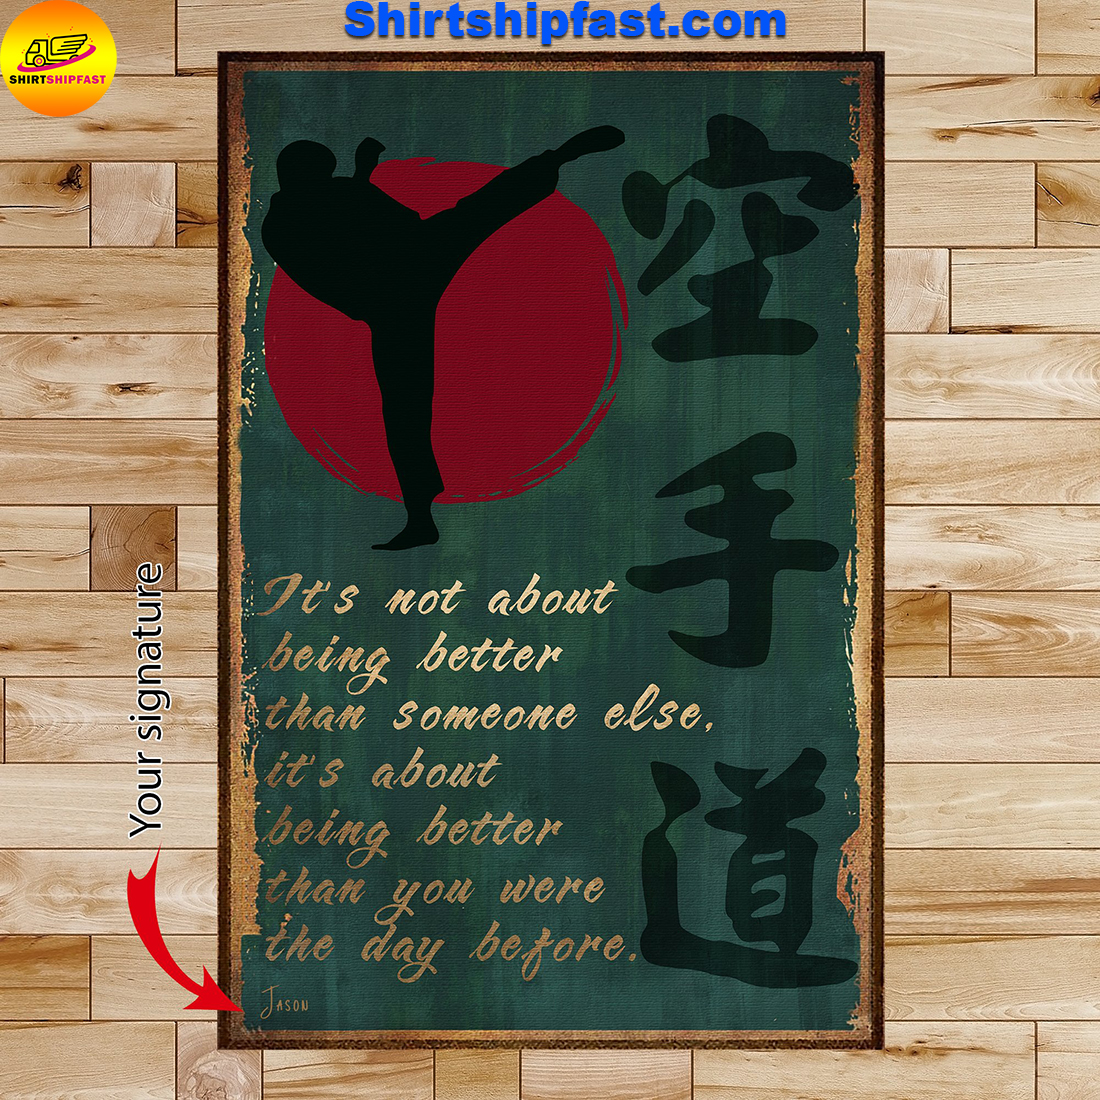 Karate It's about being better than you were the day before poster